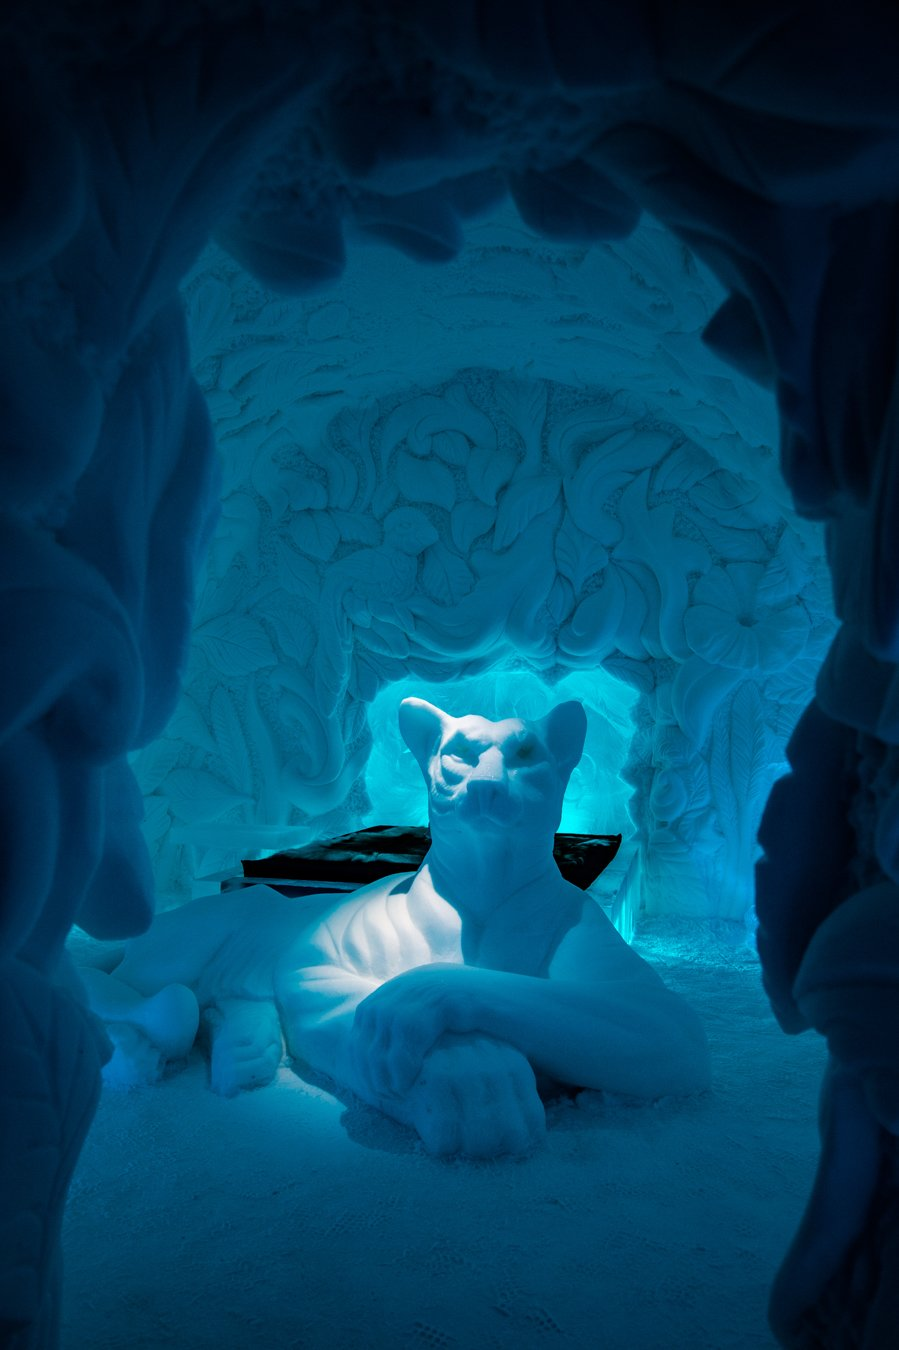 ❄️Check Out This Chilling Design at Sweden's Icehotel! icehotel ❄️Check Out This Chilling Design at Sweden's Icehotel! 6